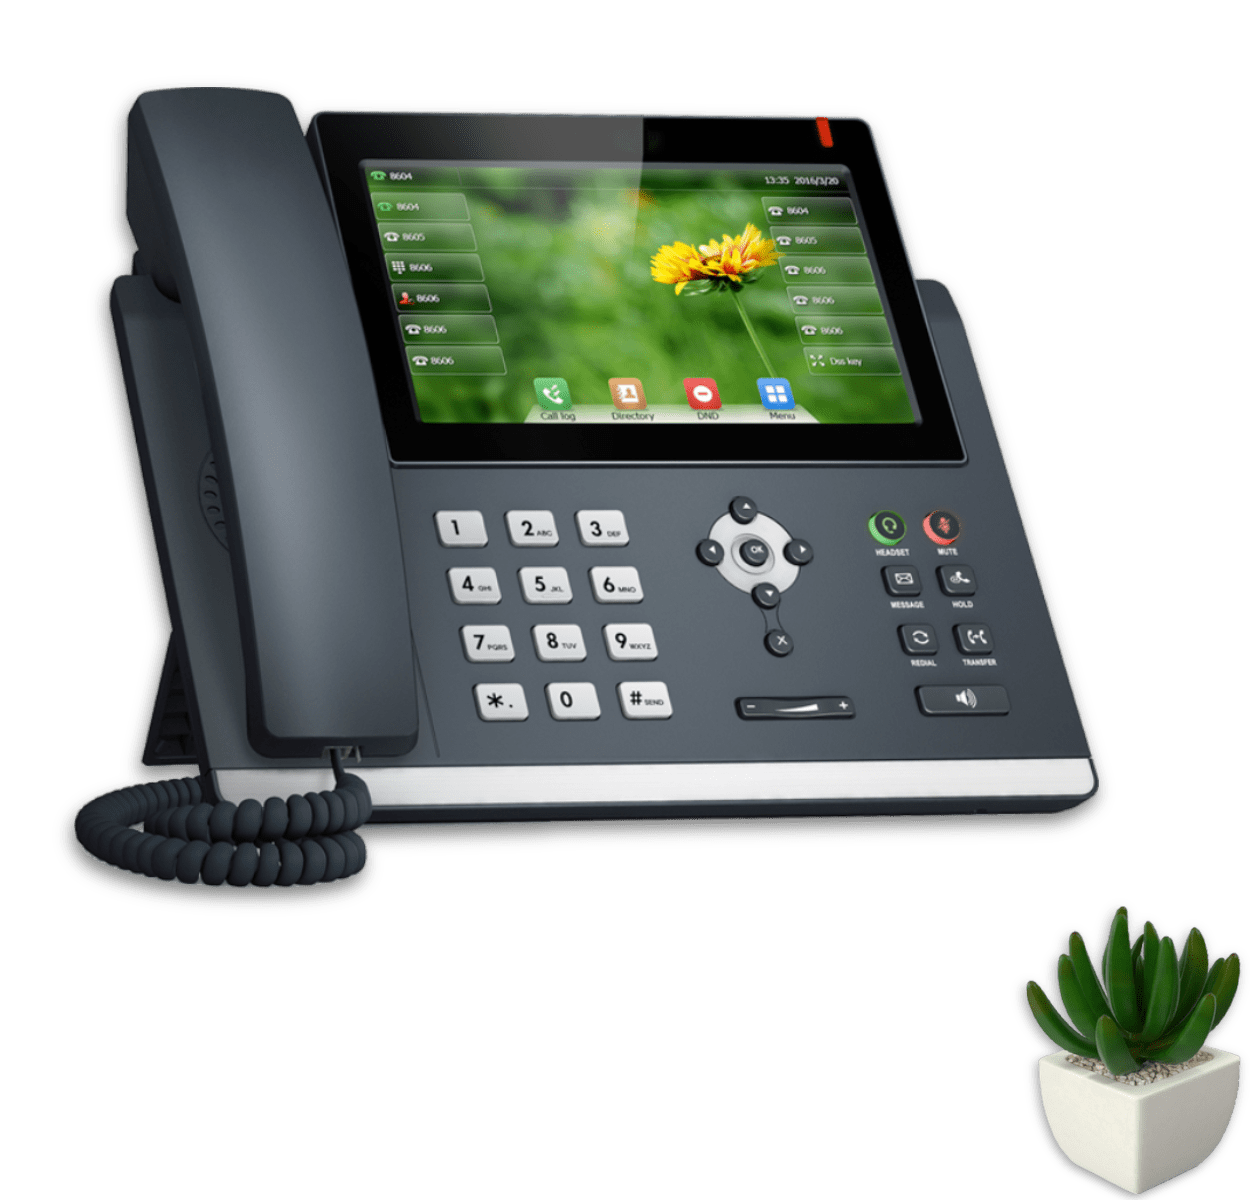 Plant, Notebook and Office VoIP IP Phone or Landline connected to LinkedPhone Virtual Phone System